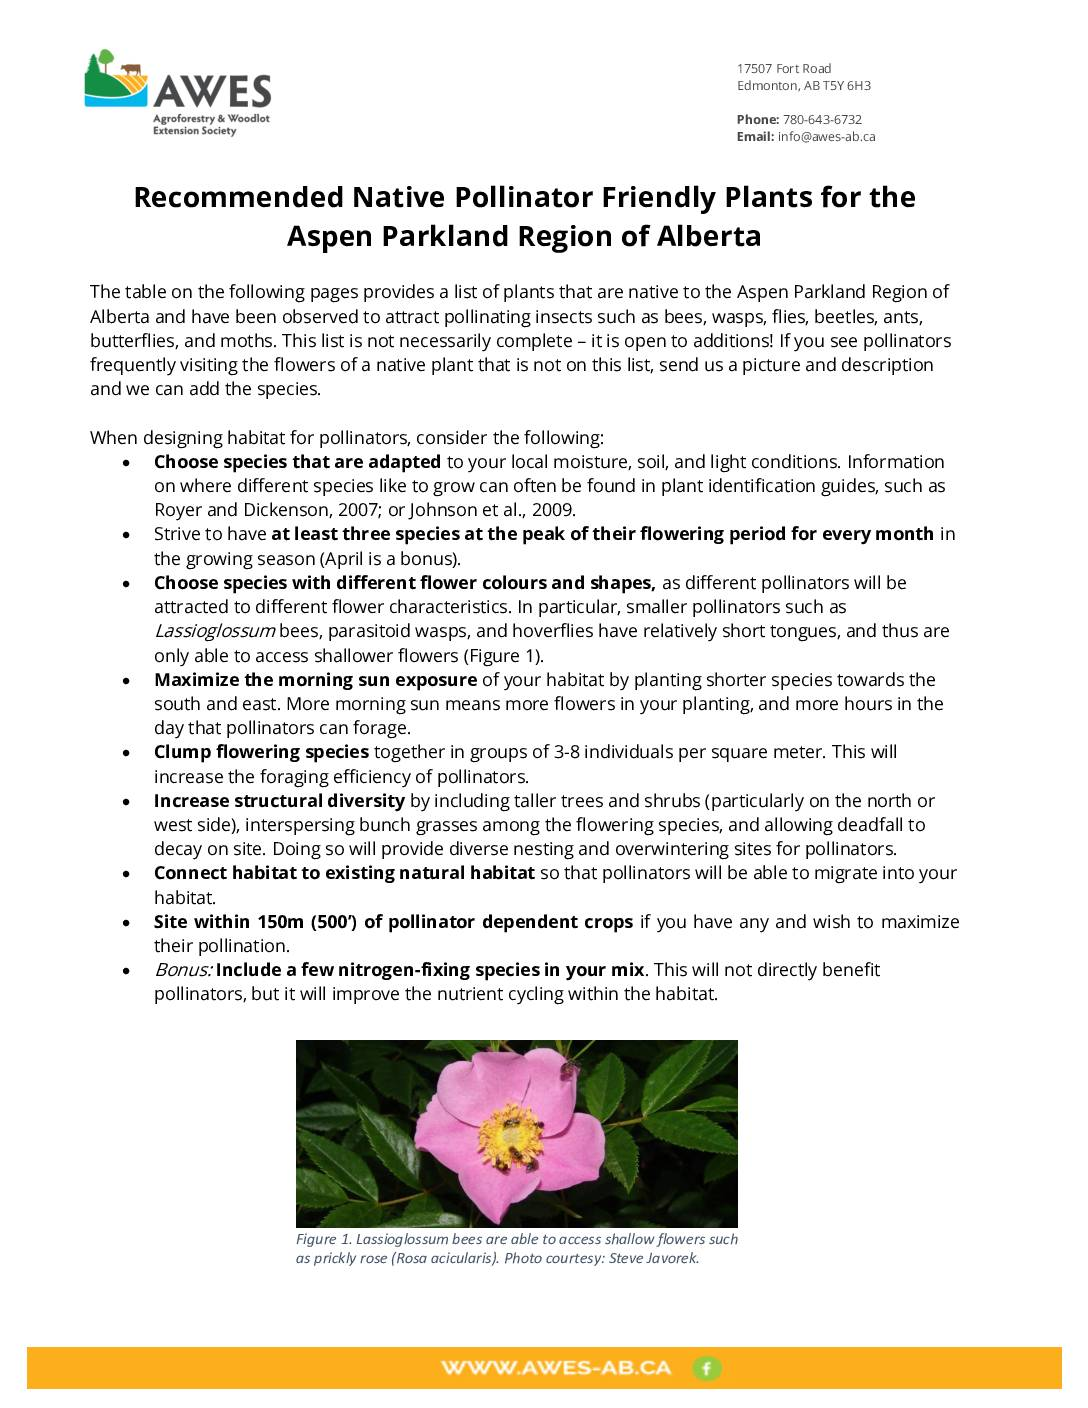 Recommended Native Pollinator Friendly Plants for the Aspen Parkland Region in Alberta